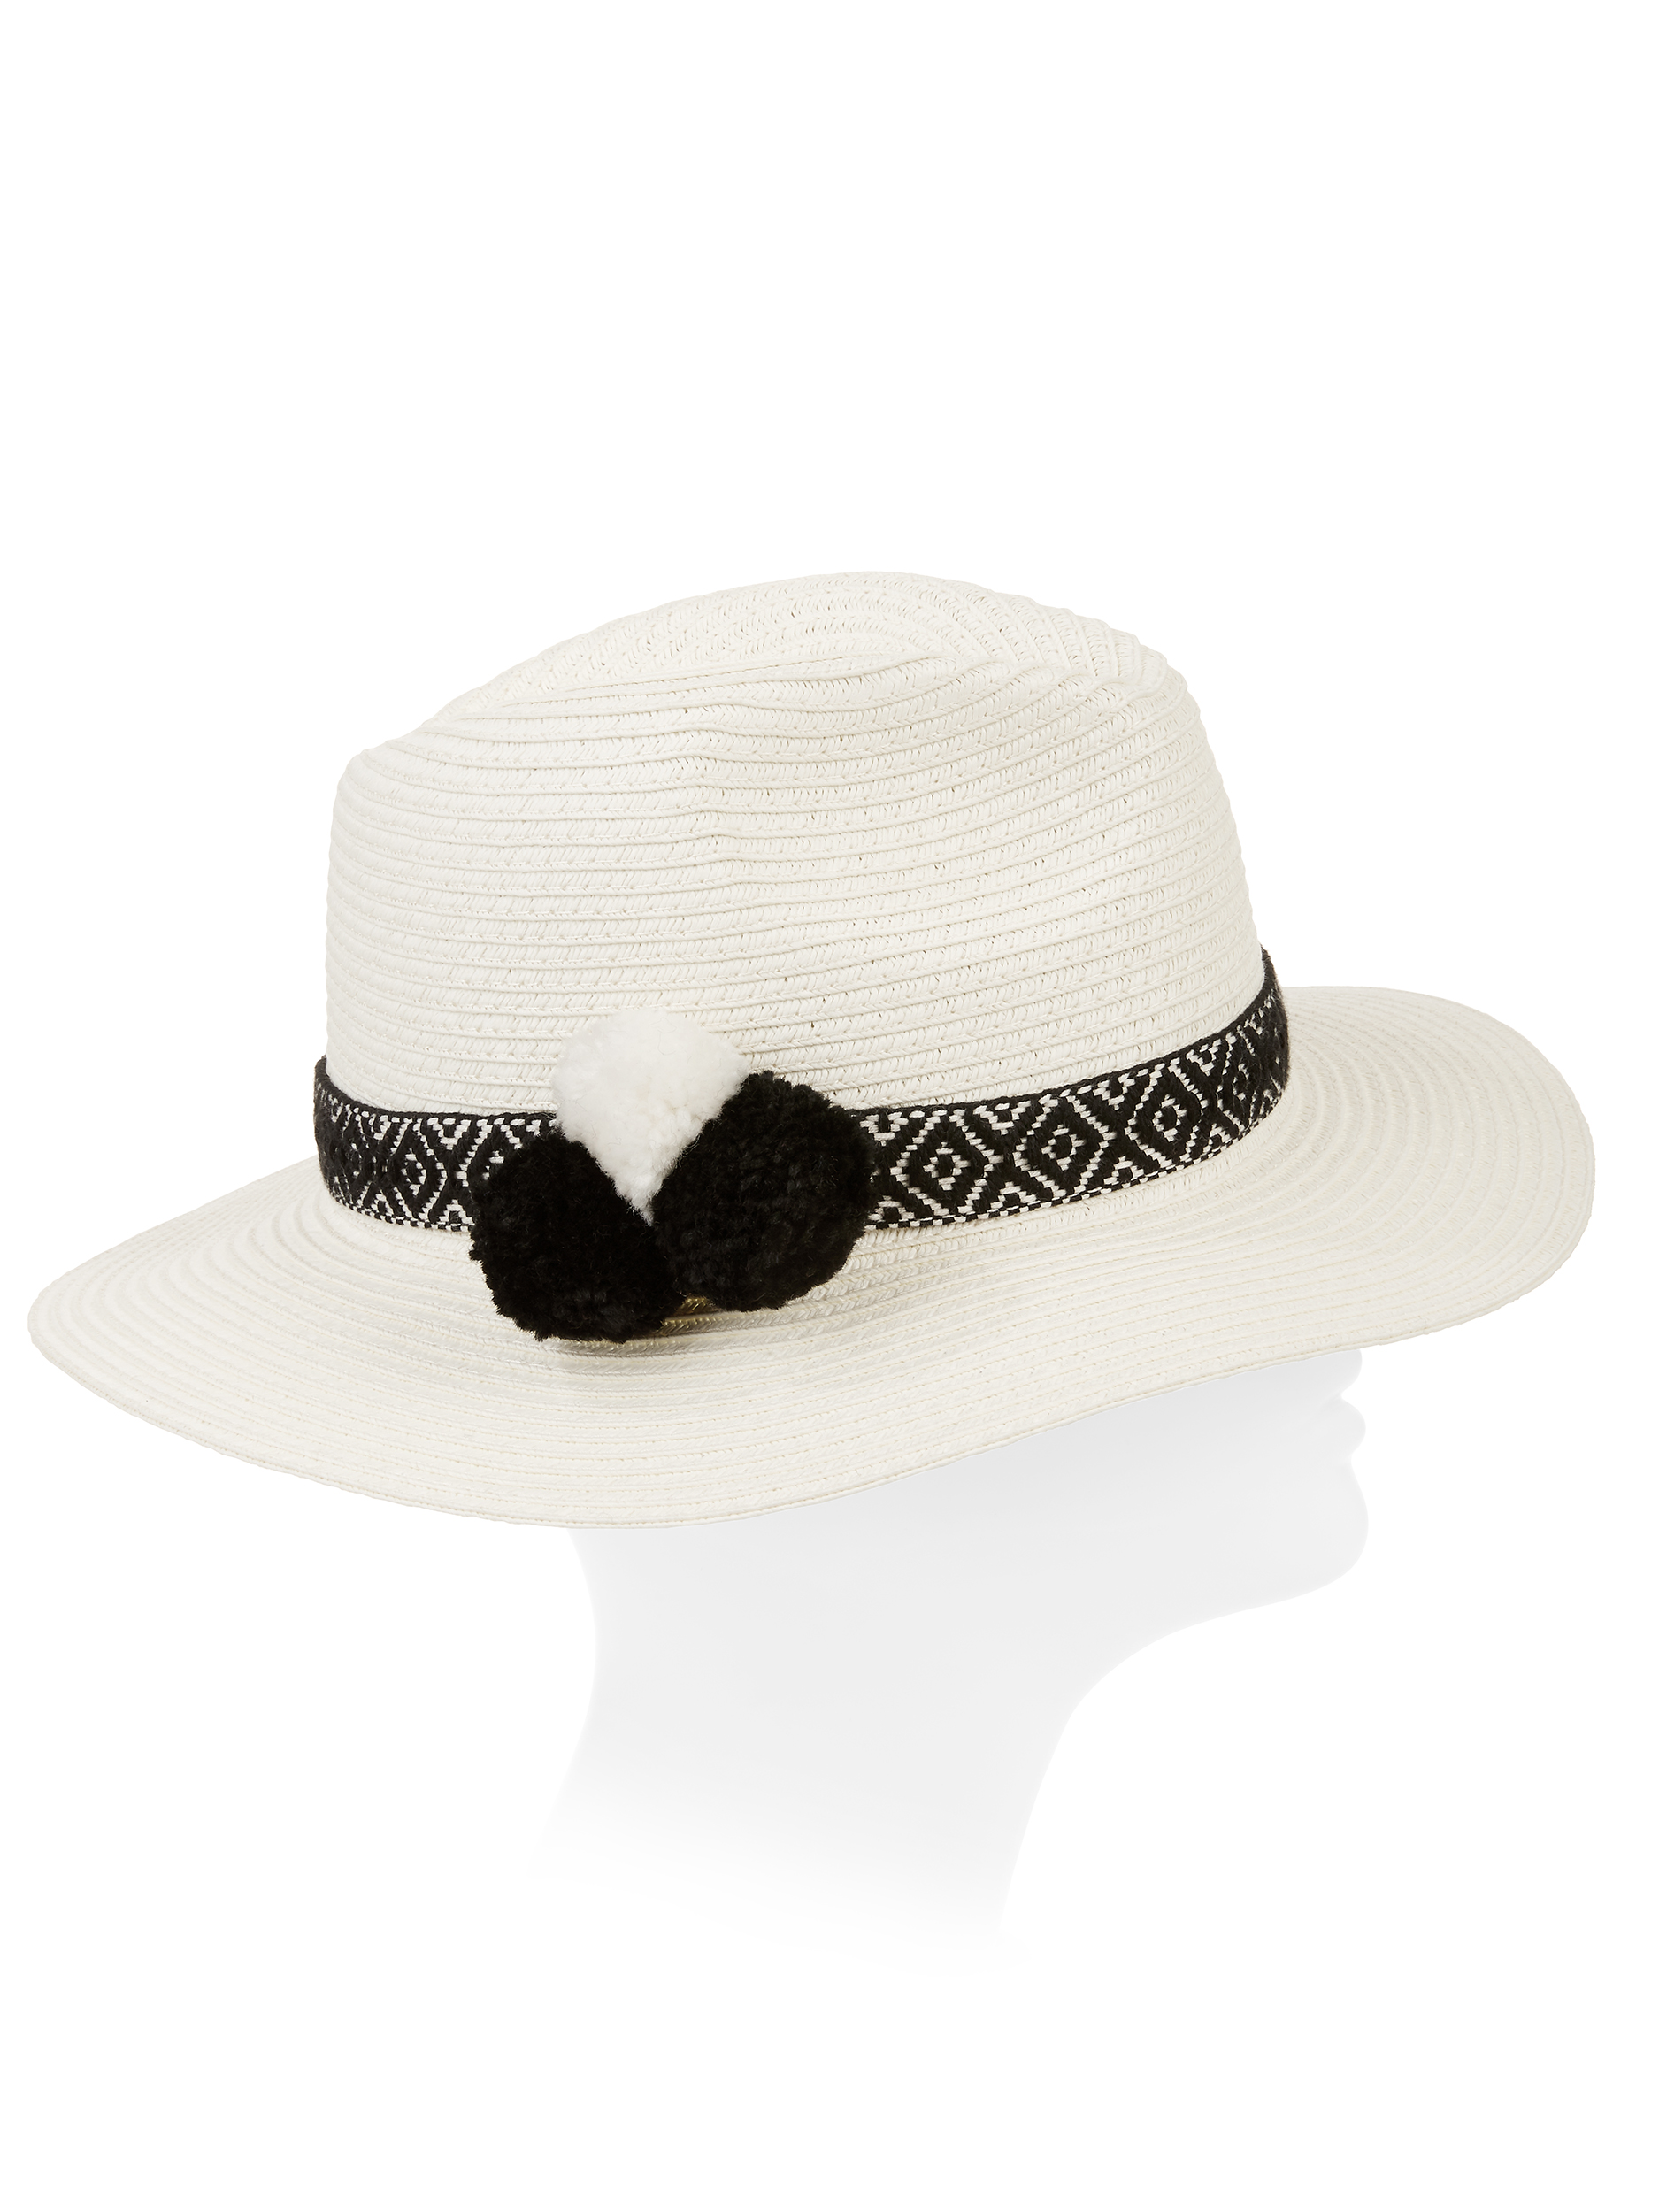 Eliza May Rose Women's Contrast Color Fedora